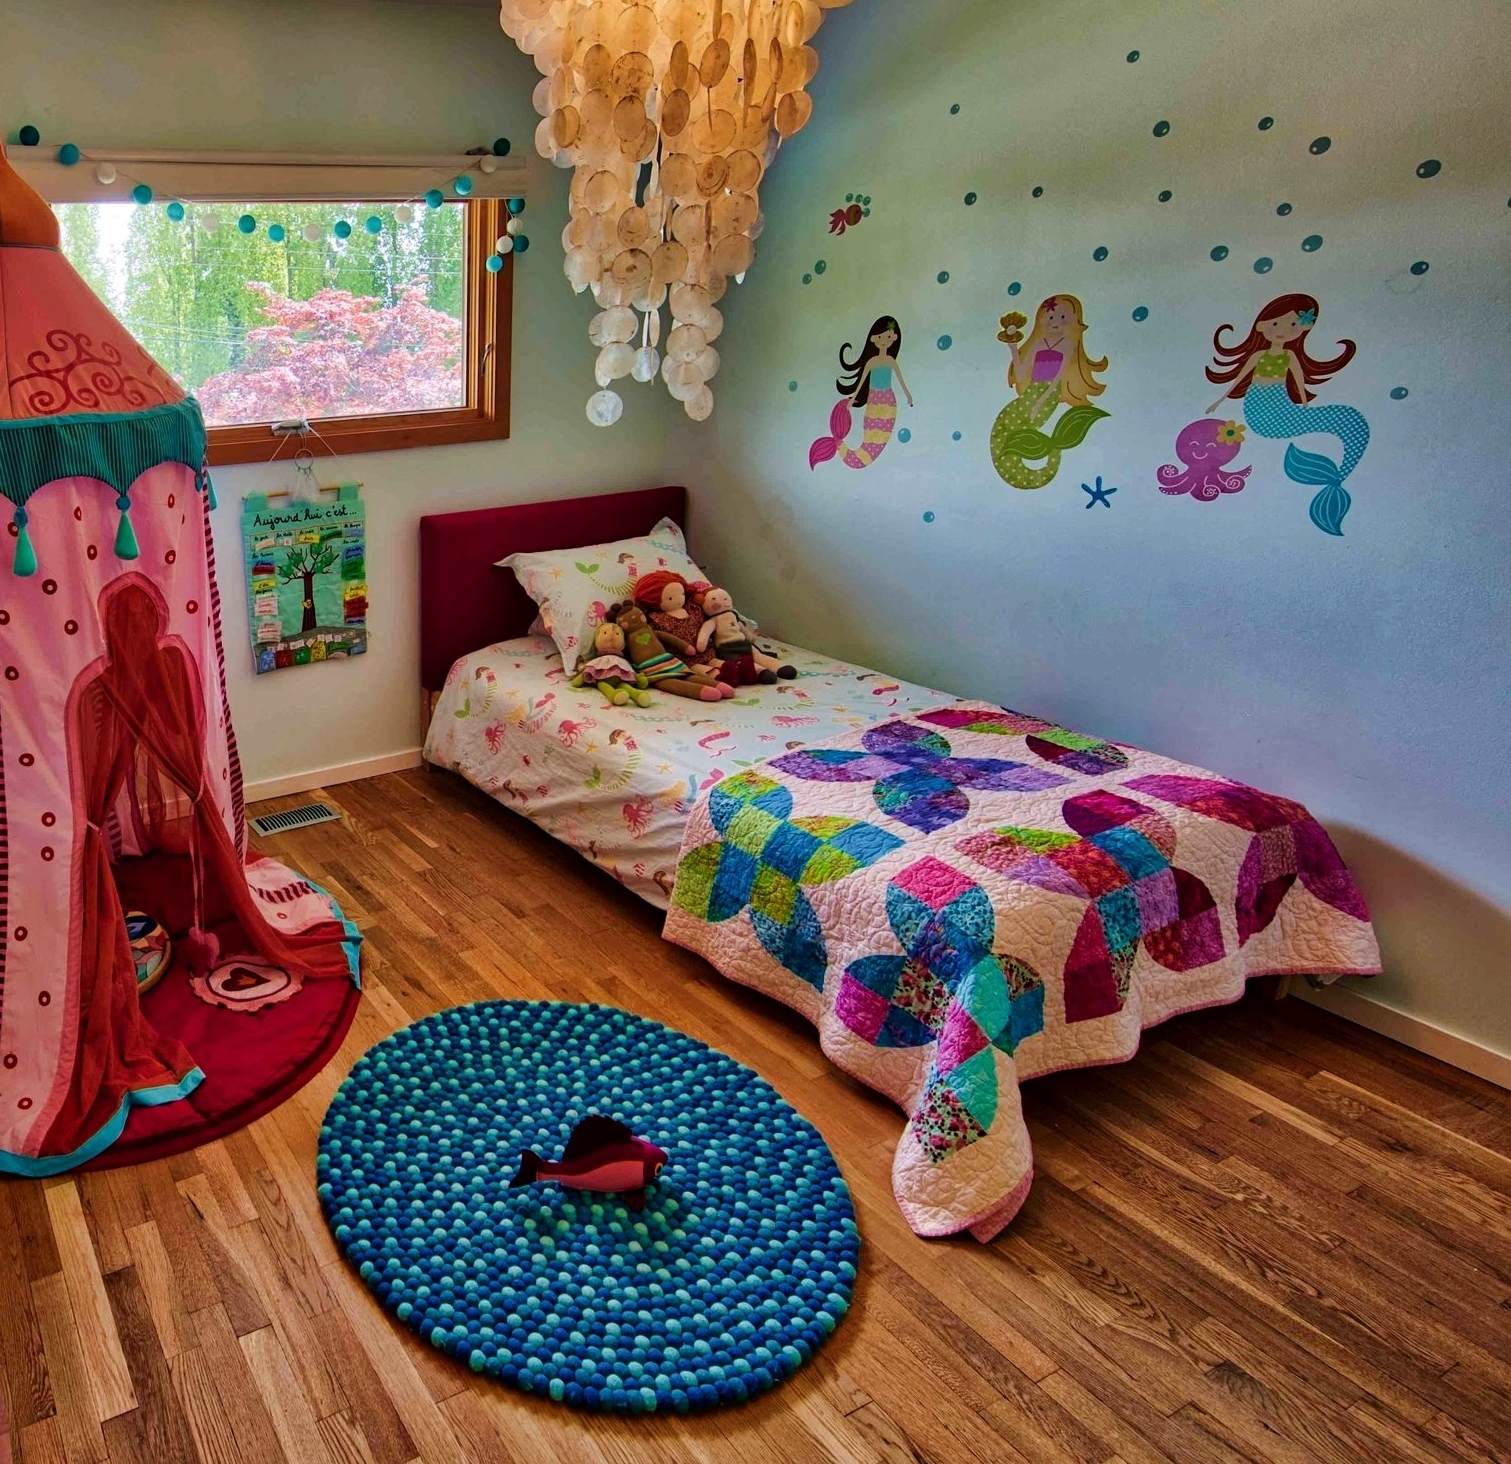 MINDFUL-HOMES-kids-room-mermaid.jpg